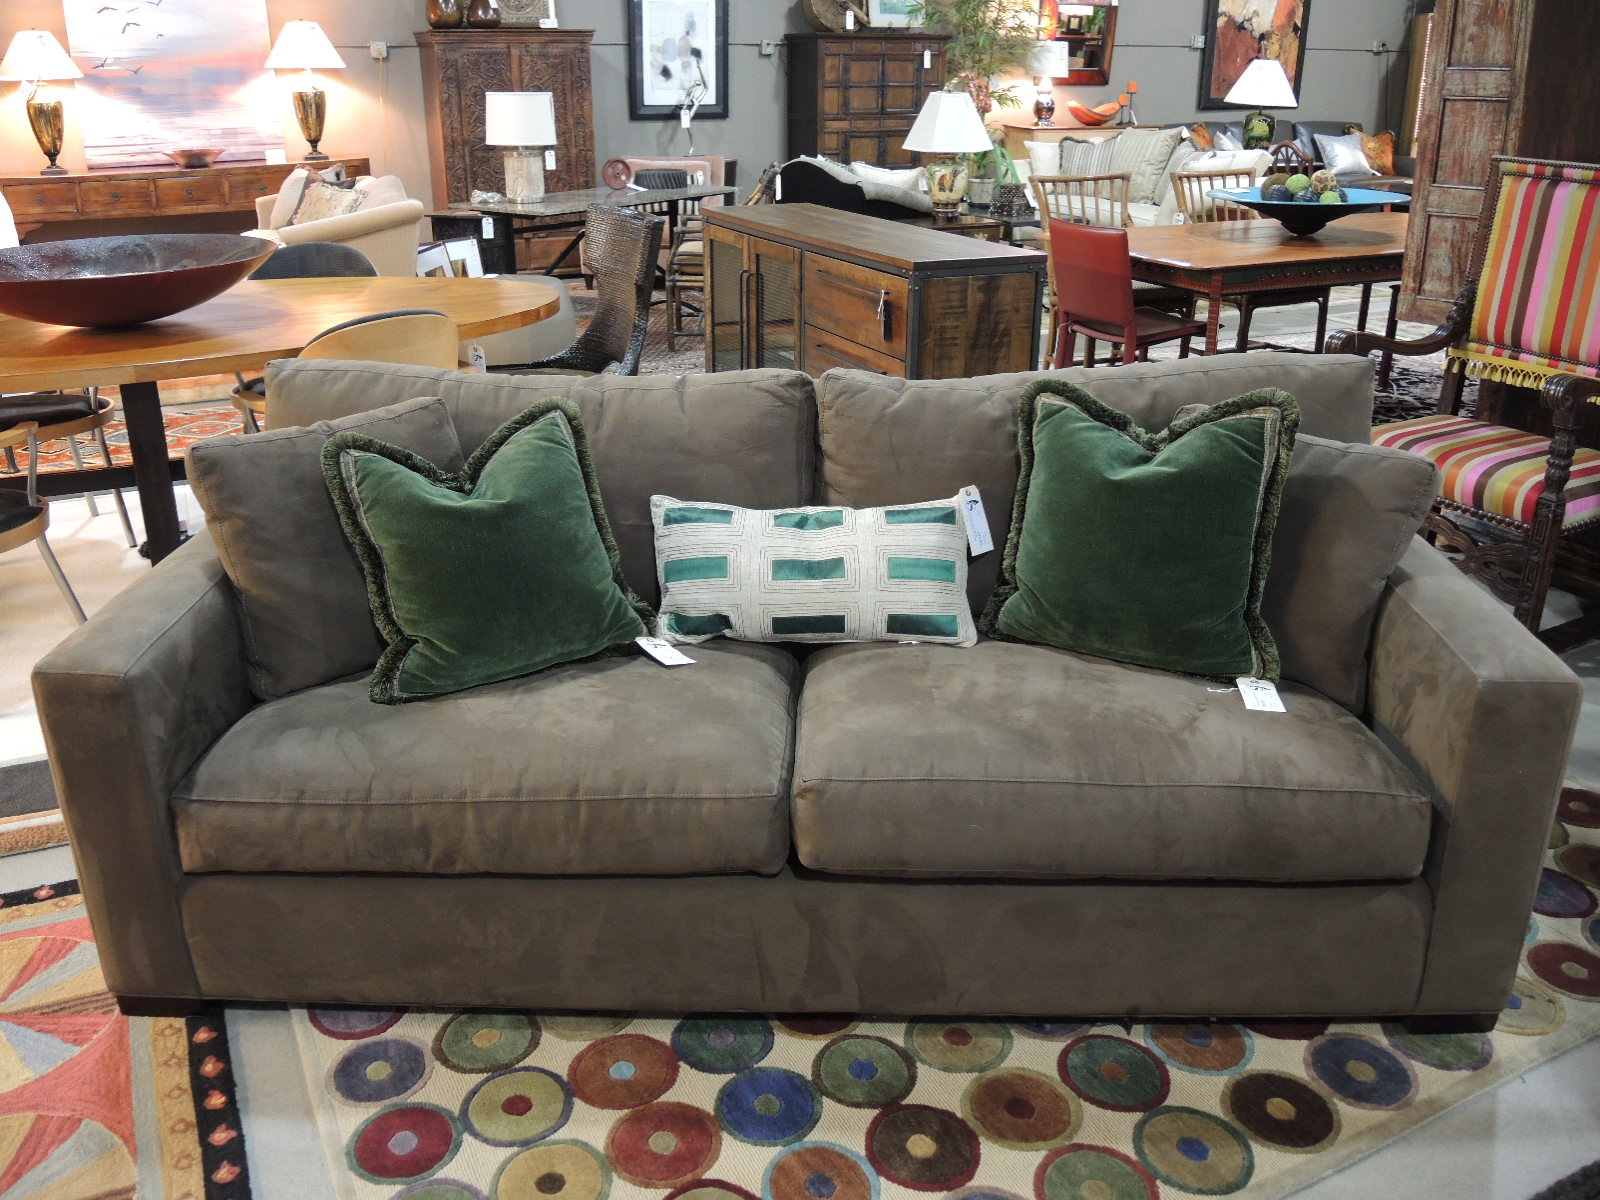 Crate and Barrel Couch | Crate and Barrel Sydney | Crate and Barrell Couches